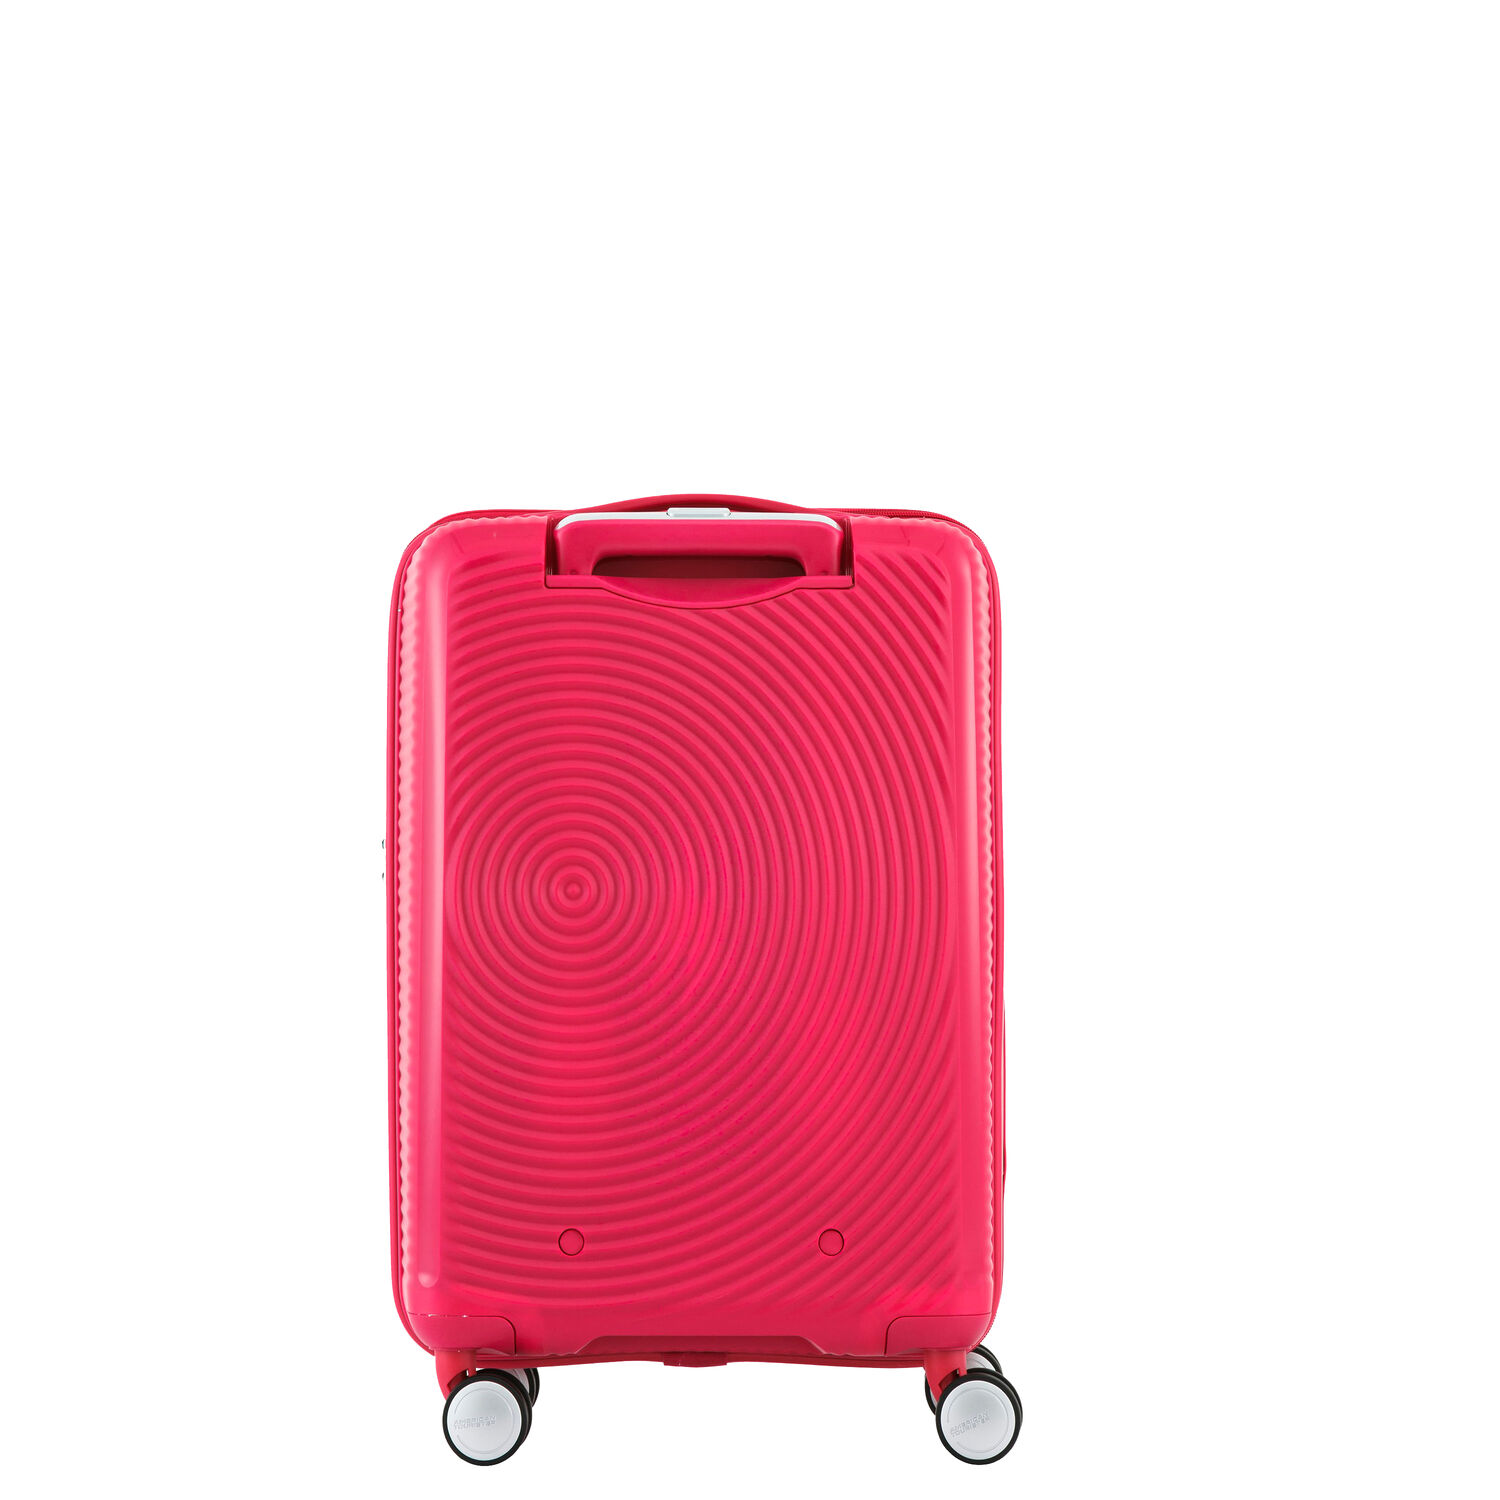 vip bags vs american tourister American tourister is a brand of luggage owned by samsonite sol koffler  founded american luggage works in providence, rhode island, usa in 1933.